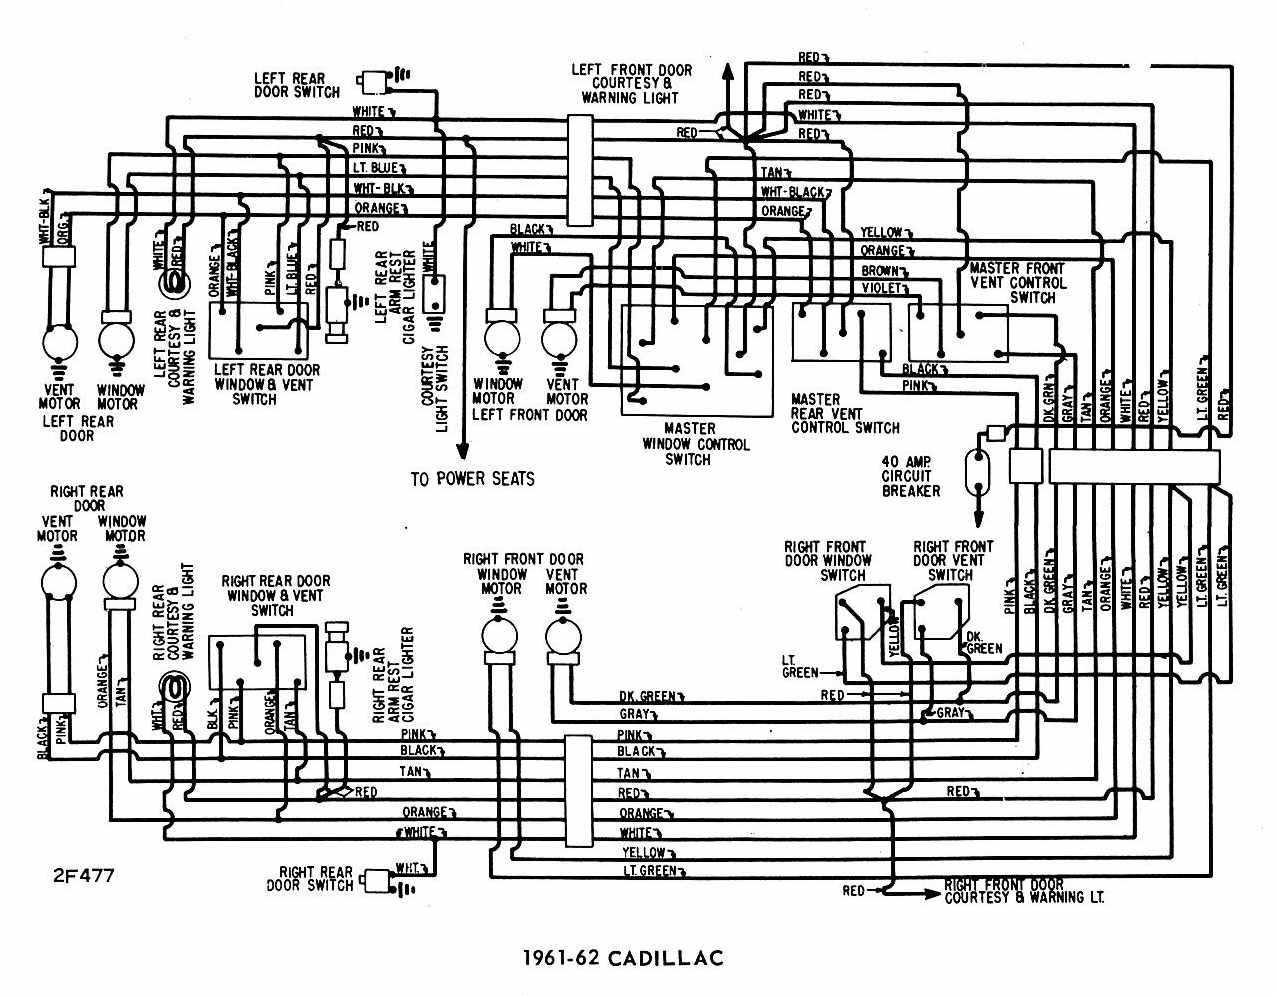 Wiring diagrams for cars drawn assuming adapter connects car wiring diagrams pdf 2005 nissan altima fuse box diagram define various pooptronica Gallery